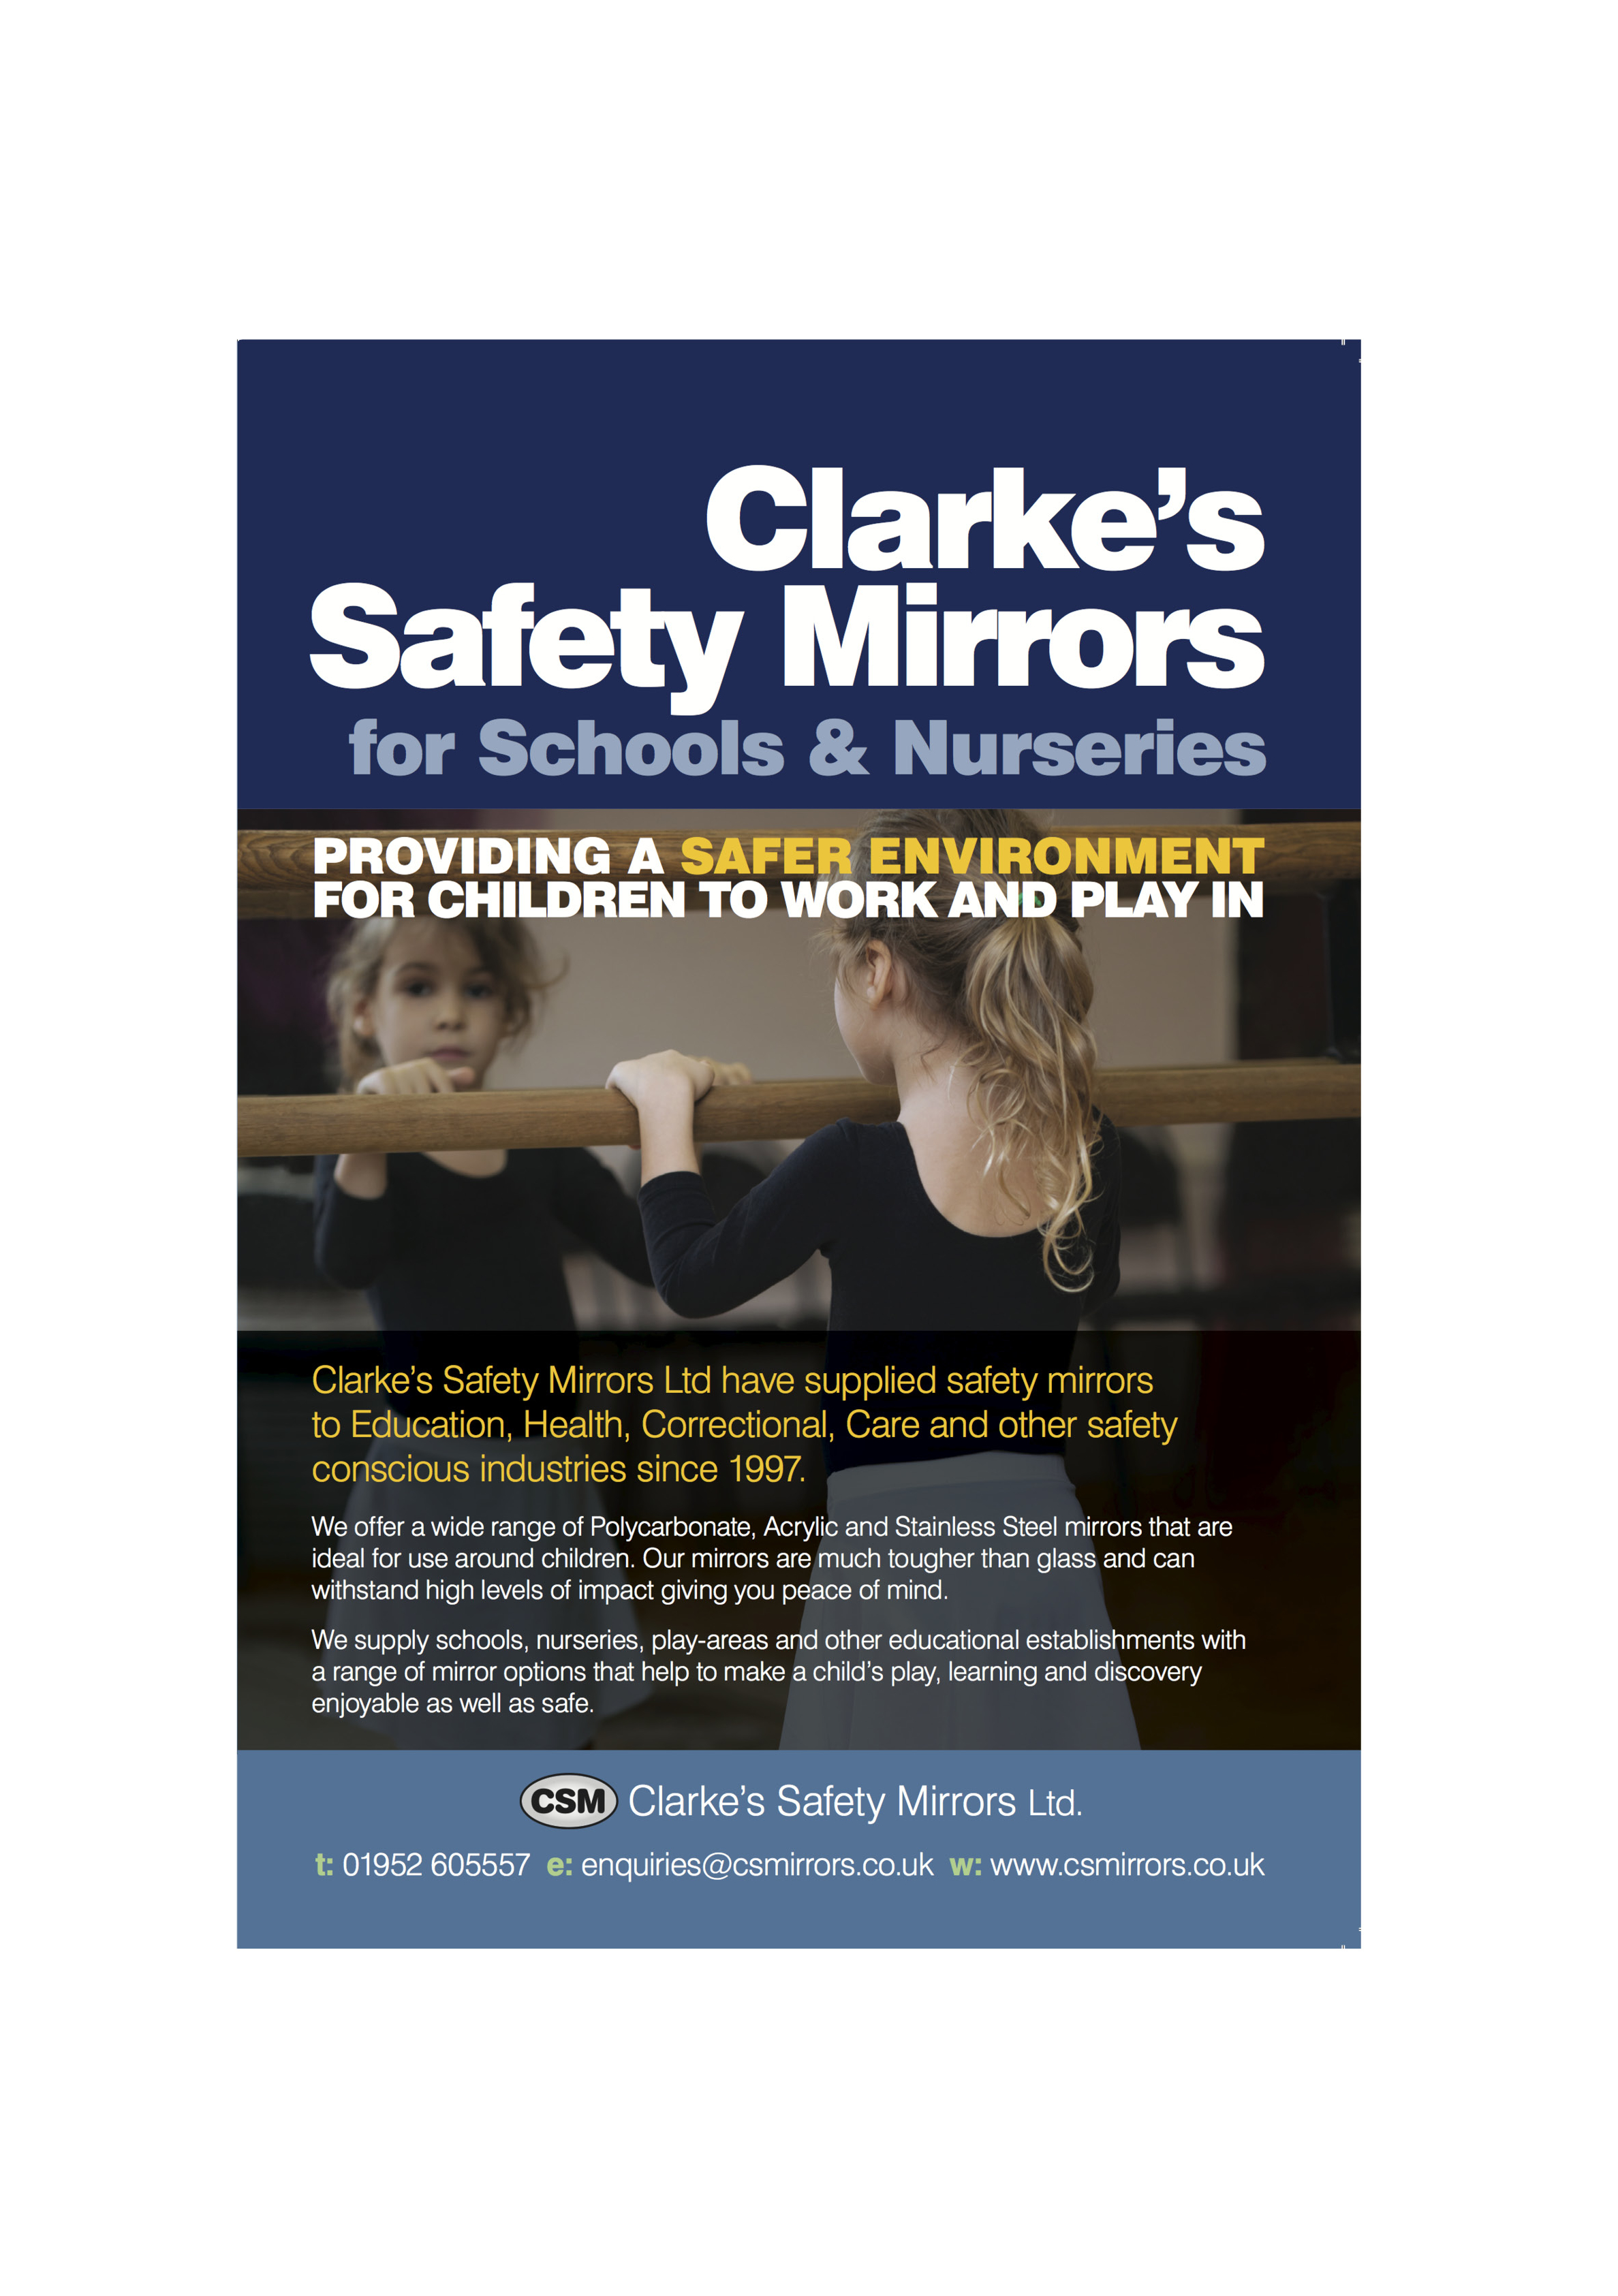 Direct Mail Leaflet for CS Mirrors by Bare Bones Marketing